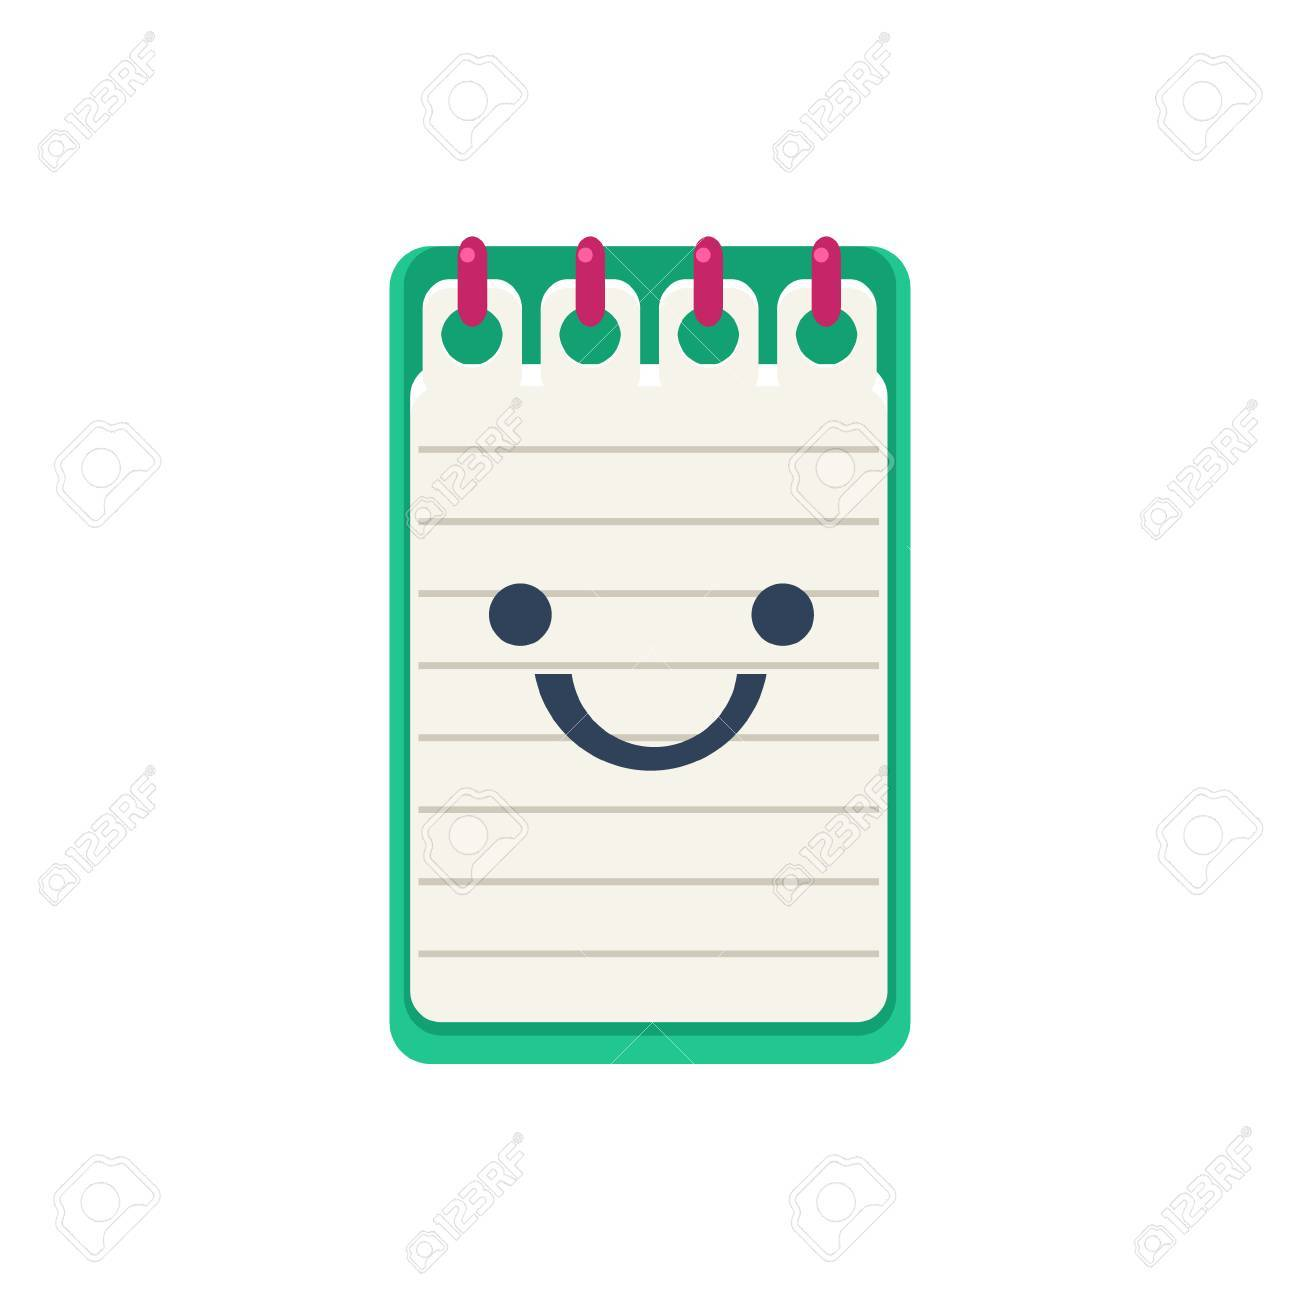 Open Block Note Primitive Icon With Smiley Face. Office Or School ...